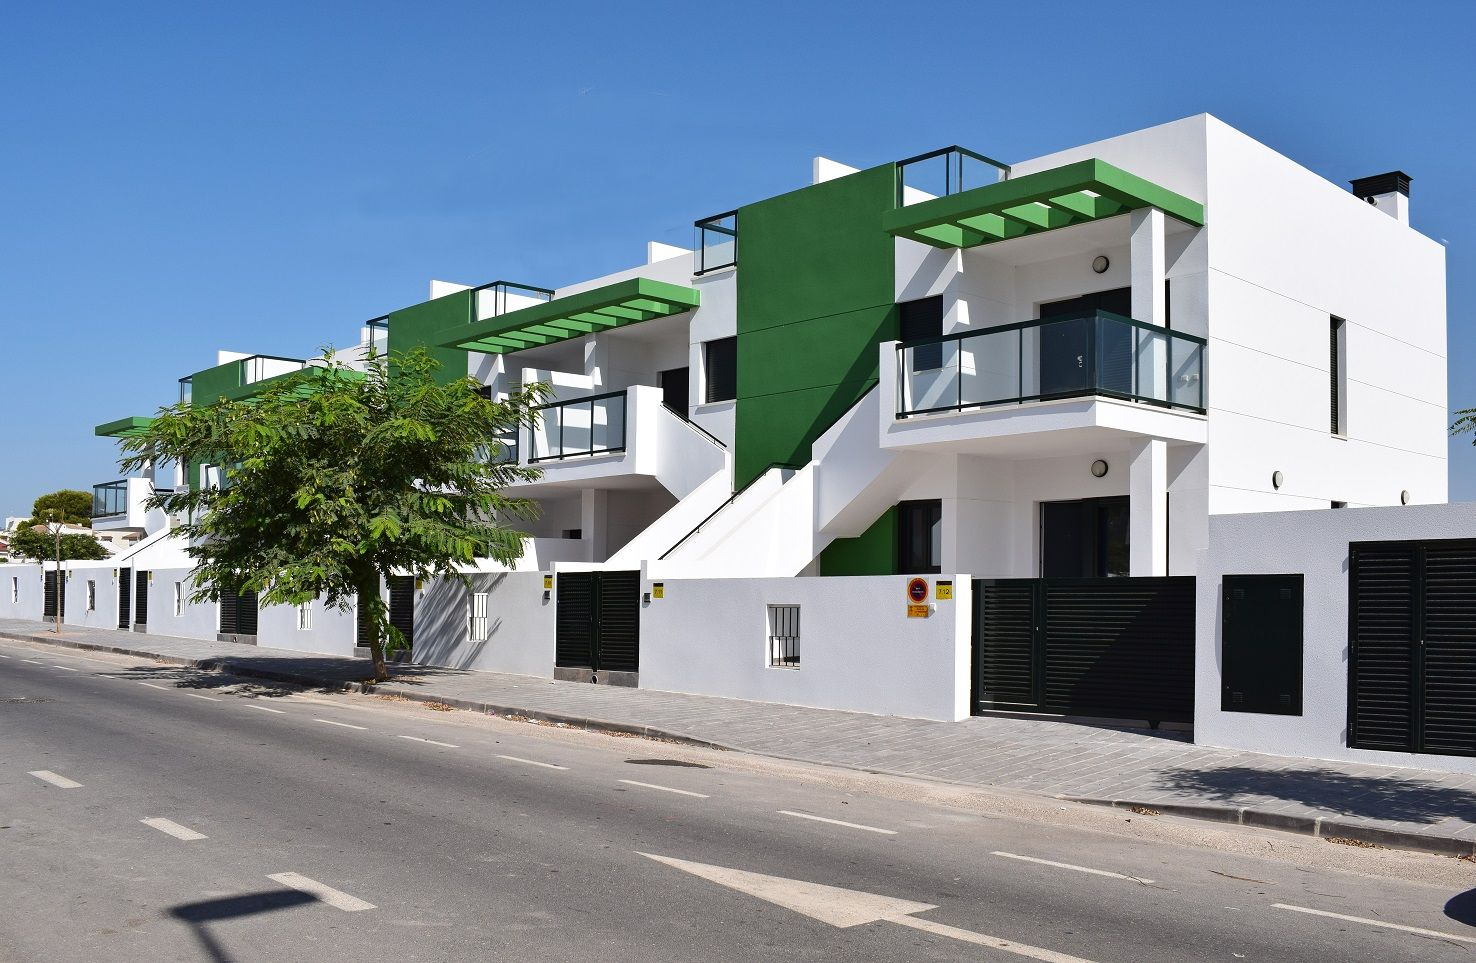 Top floor corner townhouse with 2 bedrooms and 2 bathrooms in Mil Palmeras with communal pool and large terraces 10 minutes walk from the beach 2